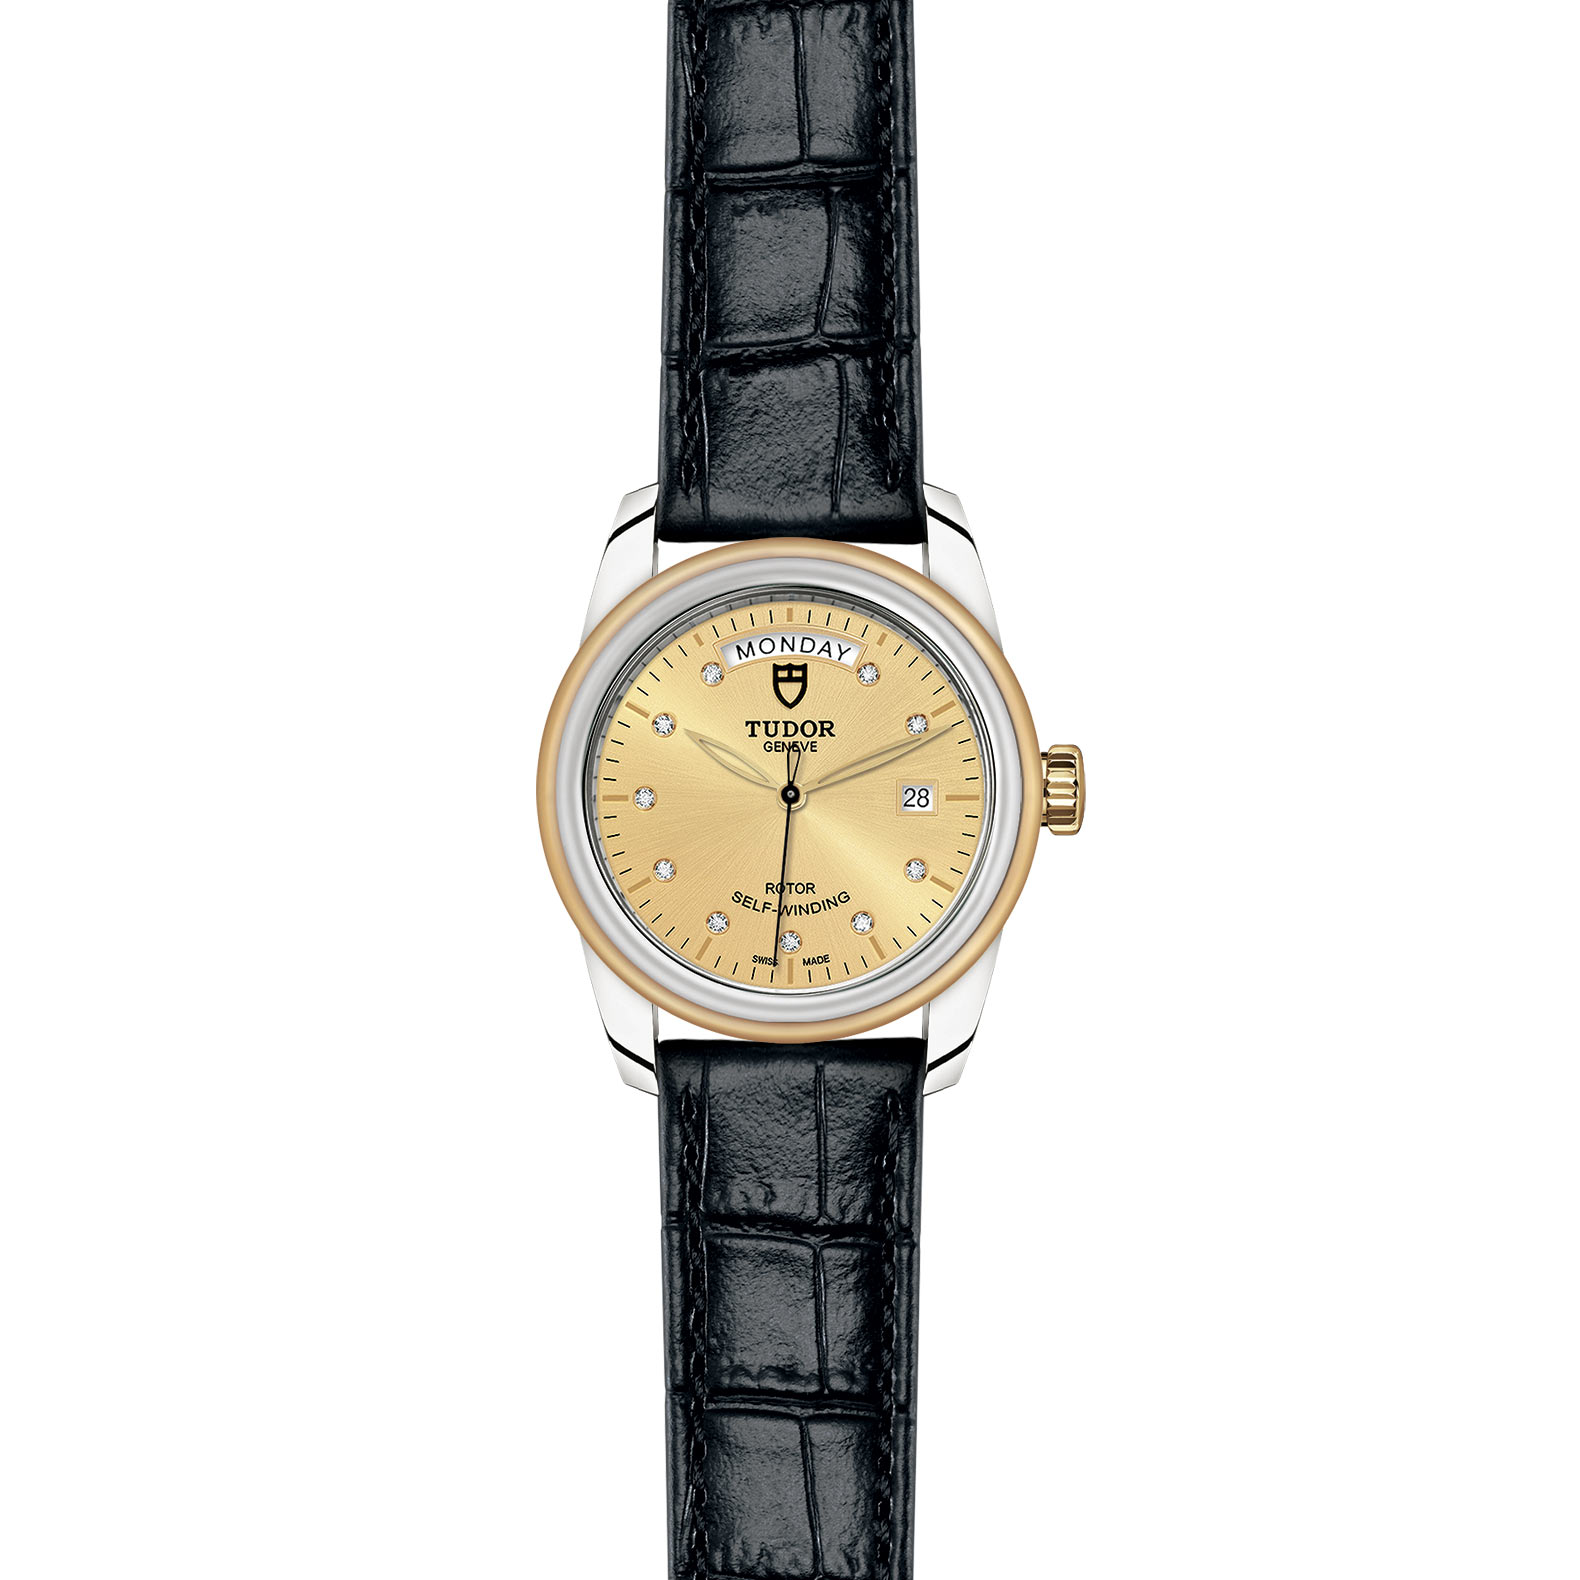 TUDOR Glamour Date Day M56003 0035 Frontfacing